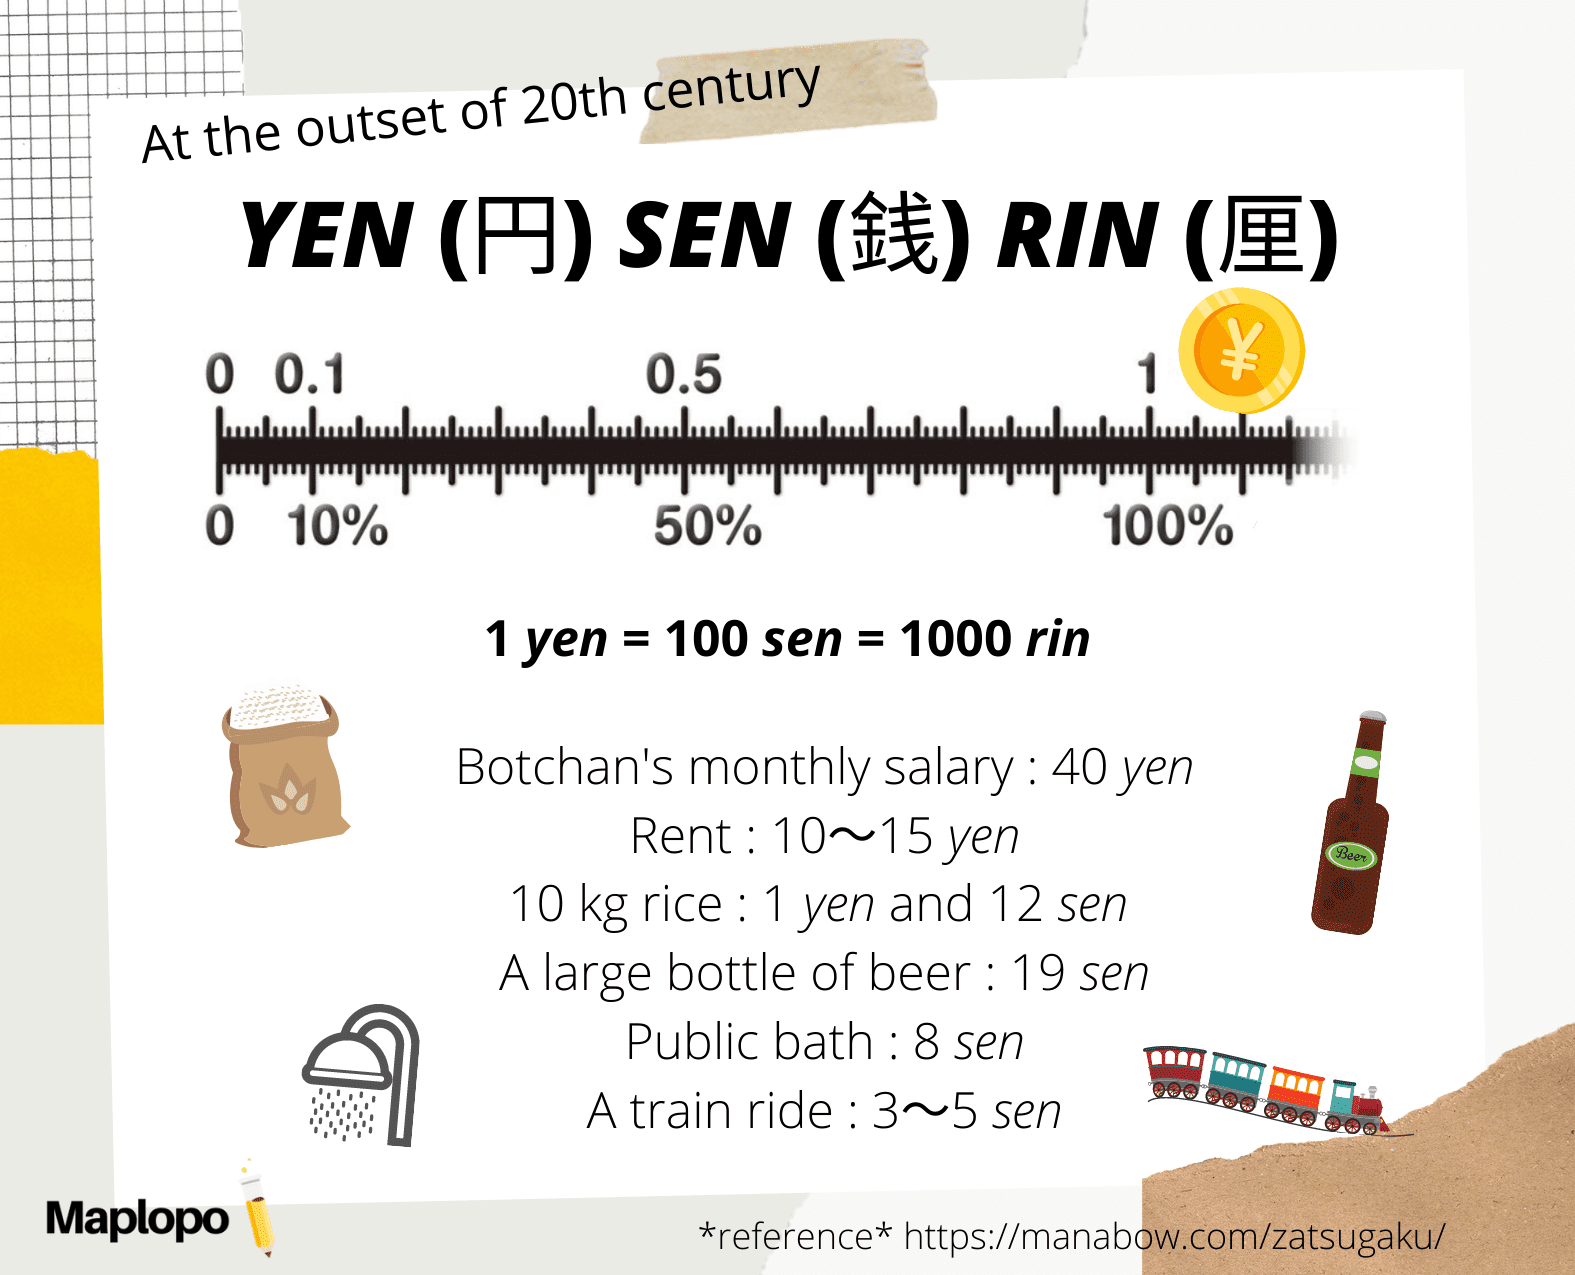 Yen Value in the Early 20th Century, Maplopo